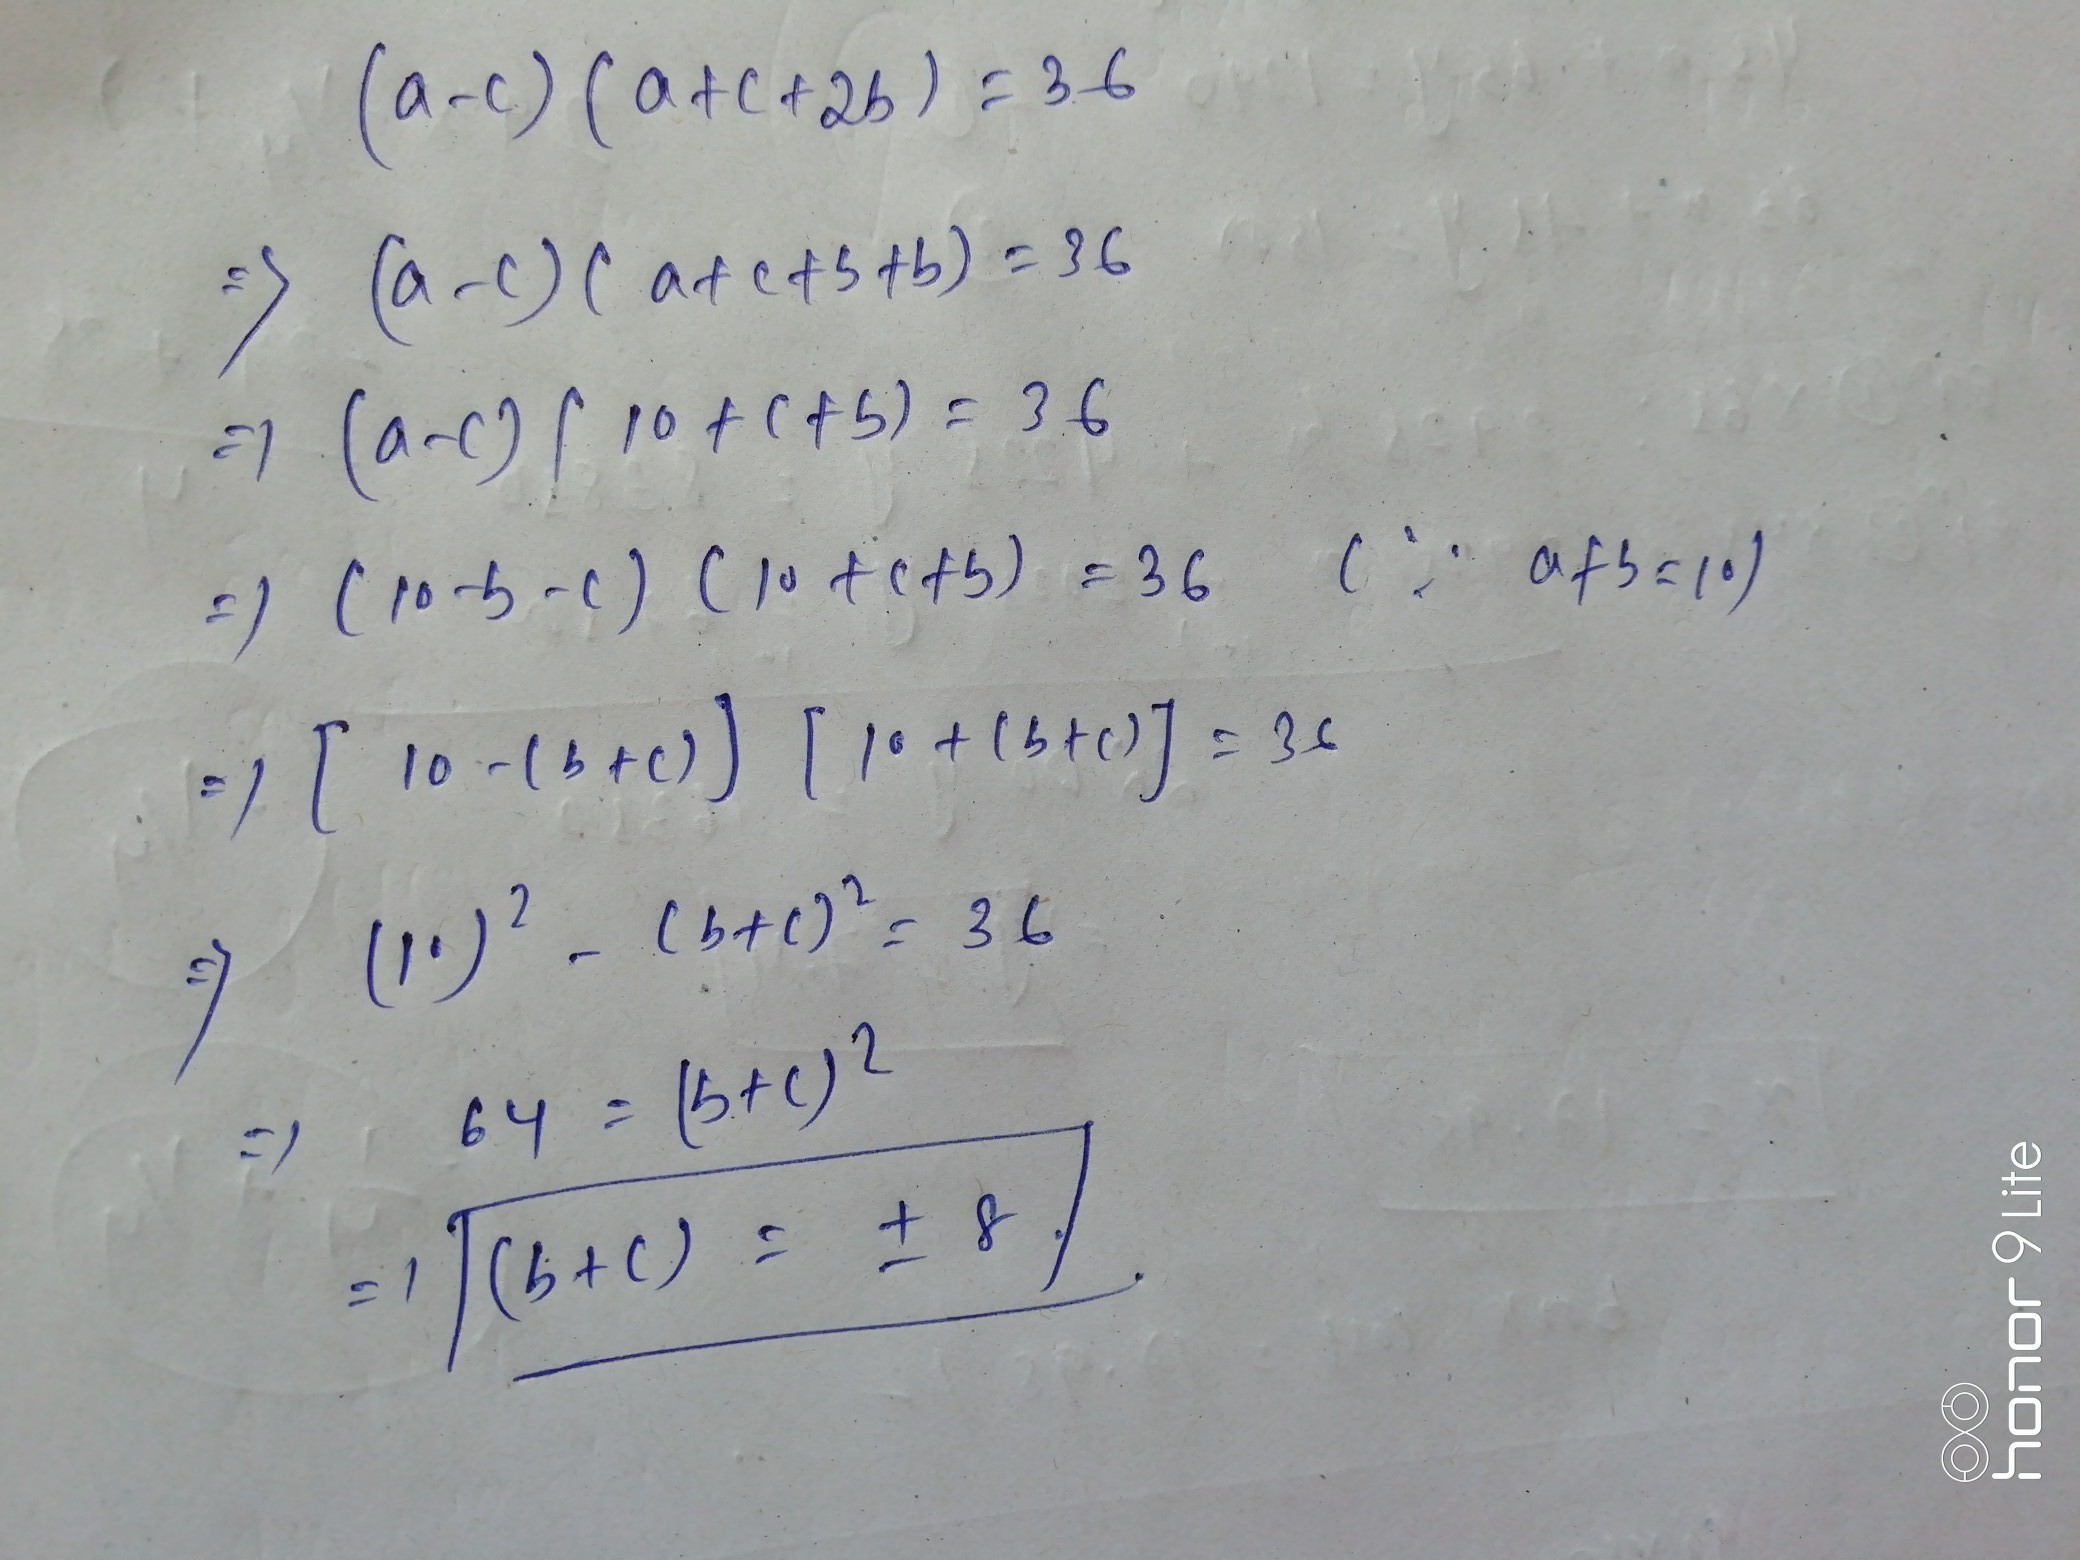 a-c)(a+c+2b) =36 and a+b=10 then b+c= - Brainly in